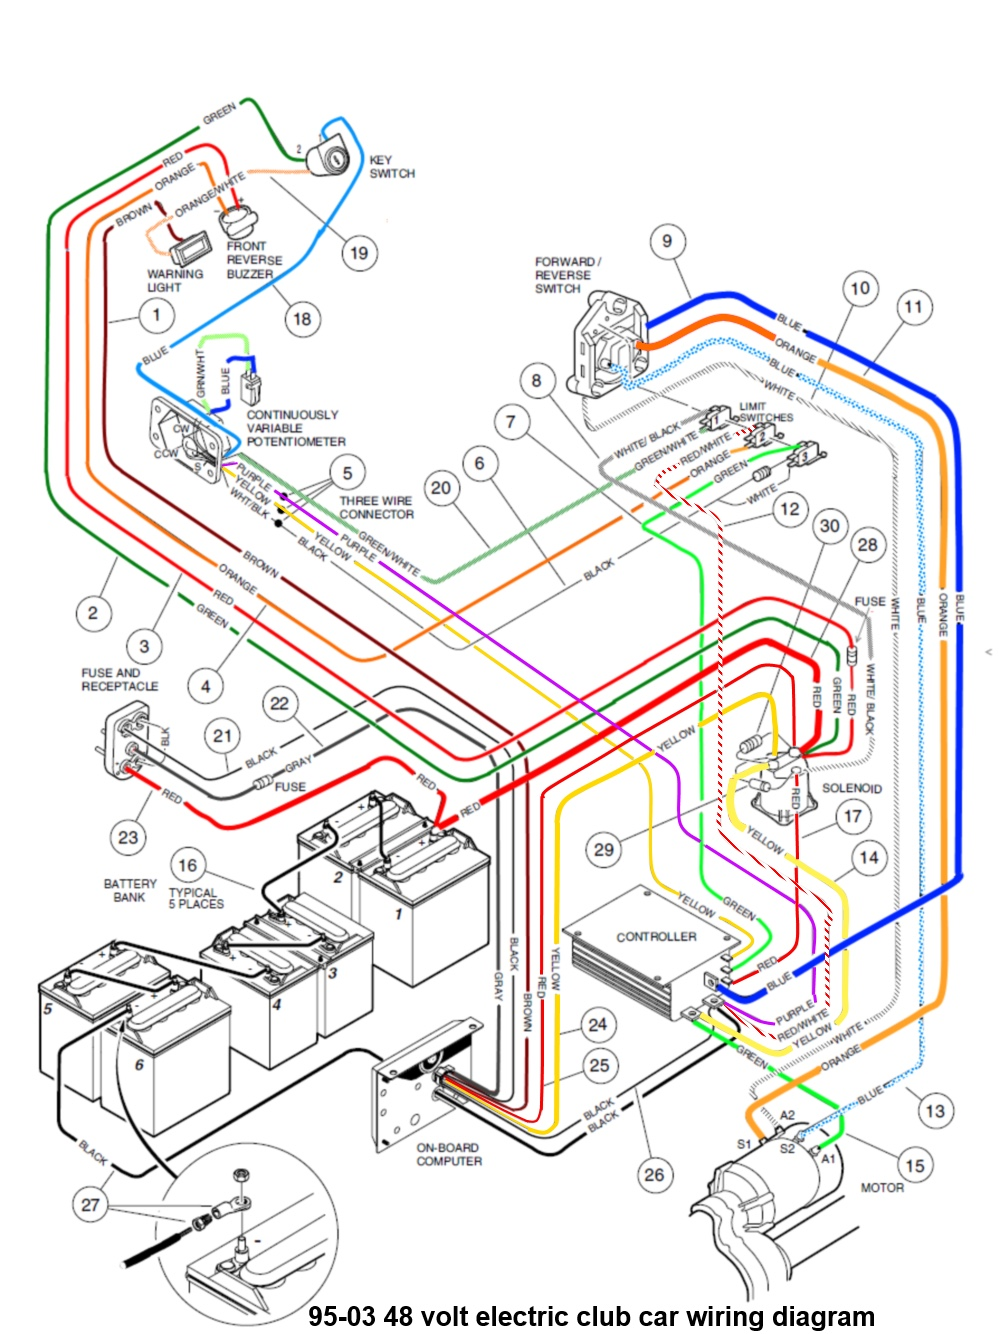 club car golf cart wiring diagram 48 volt club car top speed doesn't seem right - page 2 club car ds solenoid wiring diagram 48 volt